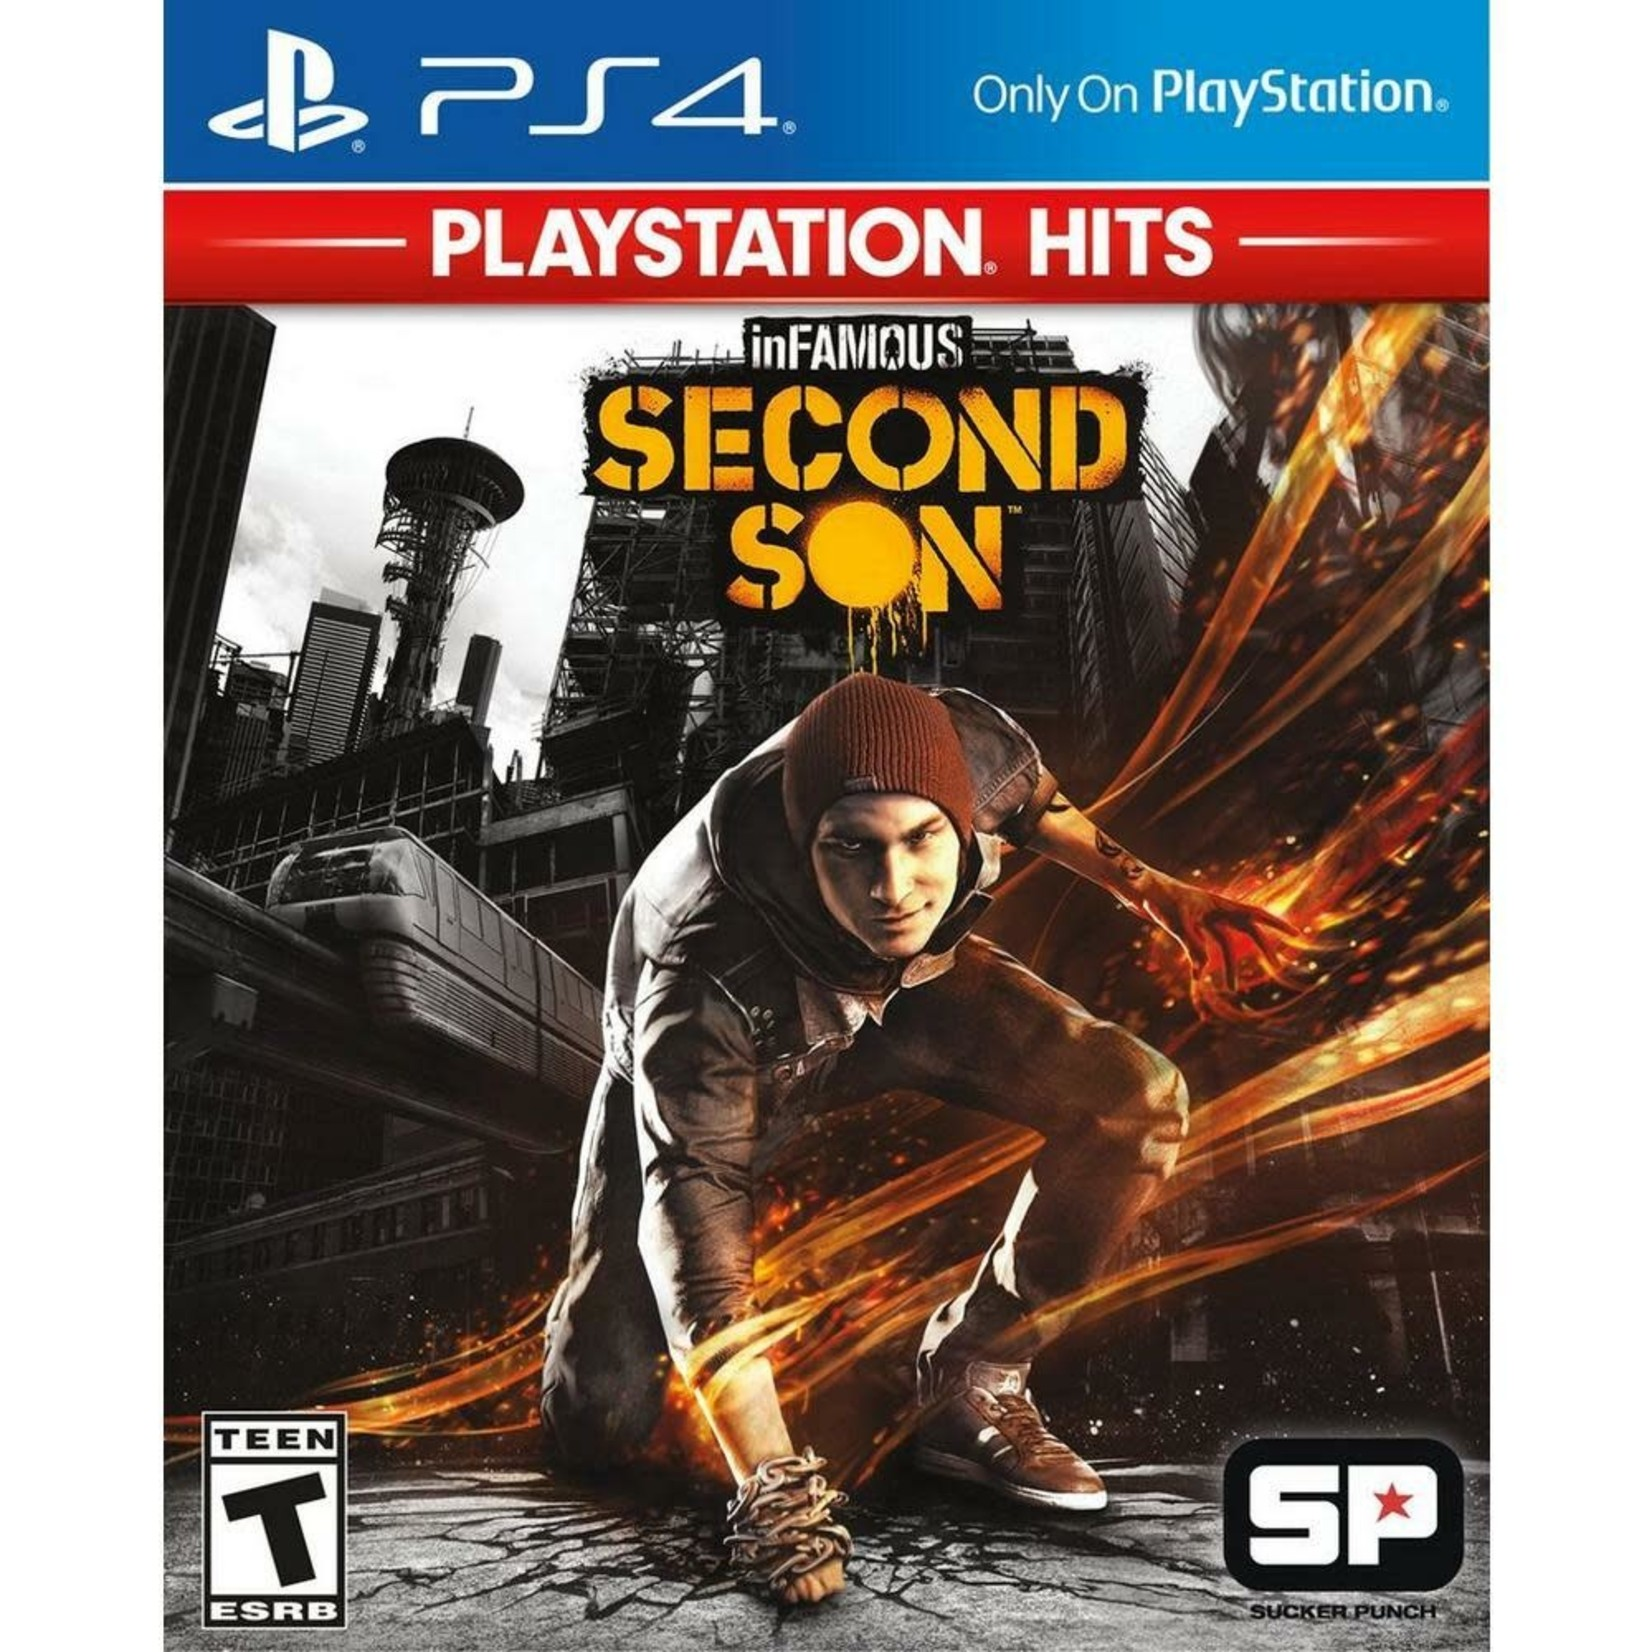 PS4-Infamous Second Son